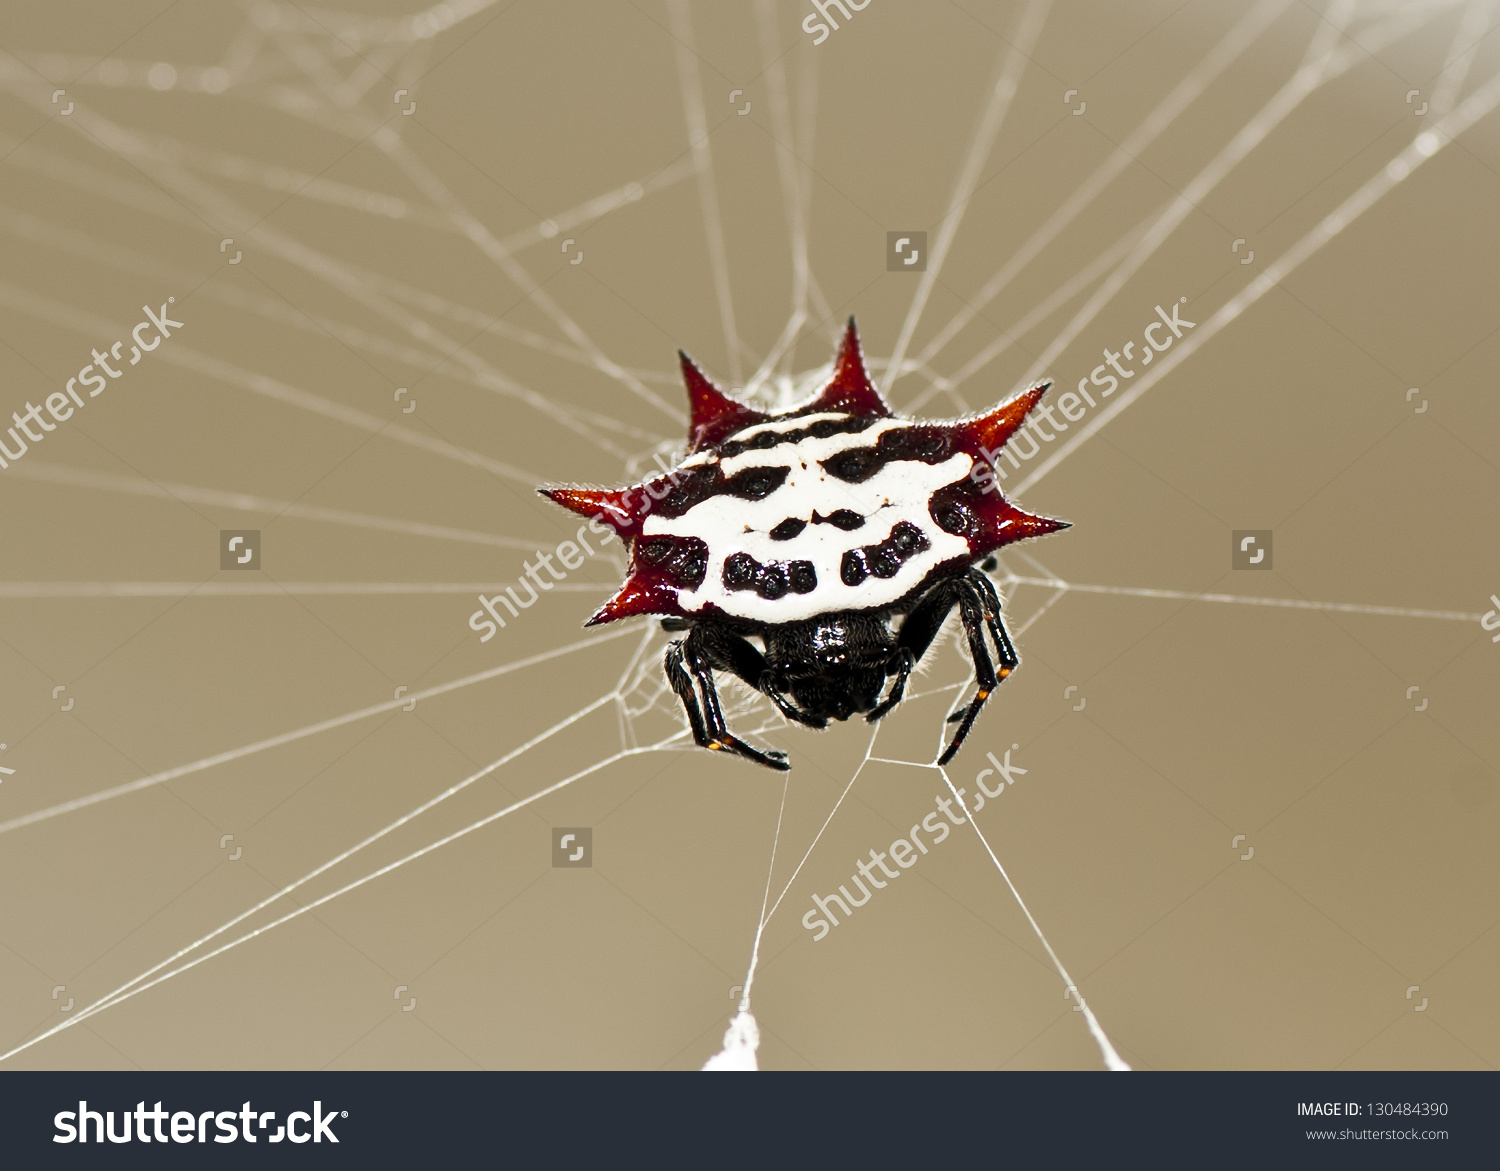 Spiny Orb Weaver clipart #7, Download drawings